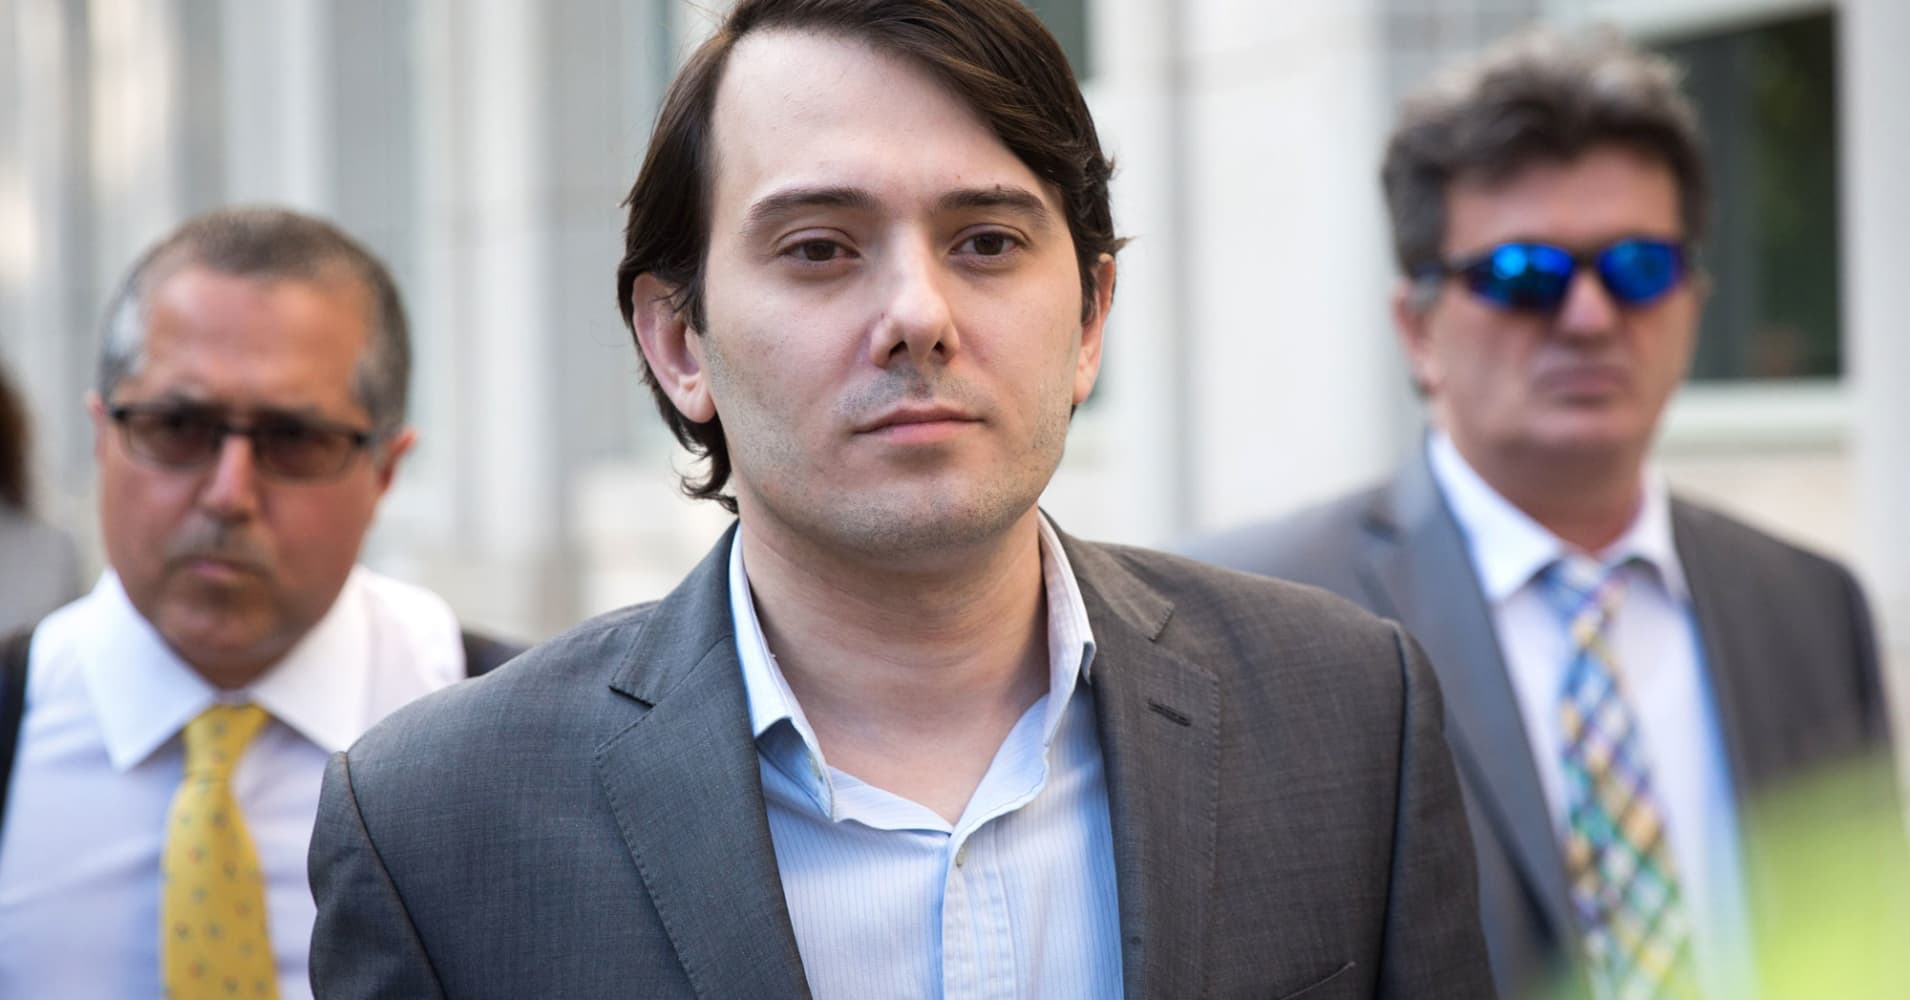 Judge revokes Martin Shkreli's bail after Facebook post offered bounty for Hillary Clinton's hair